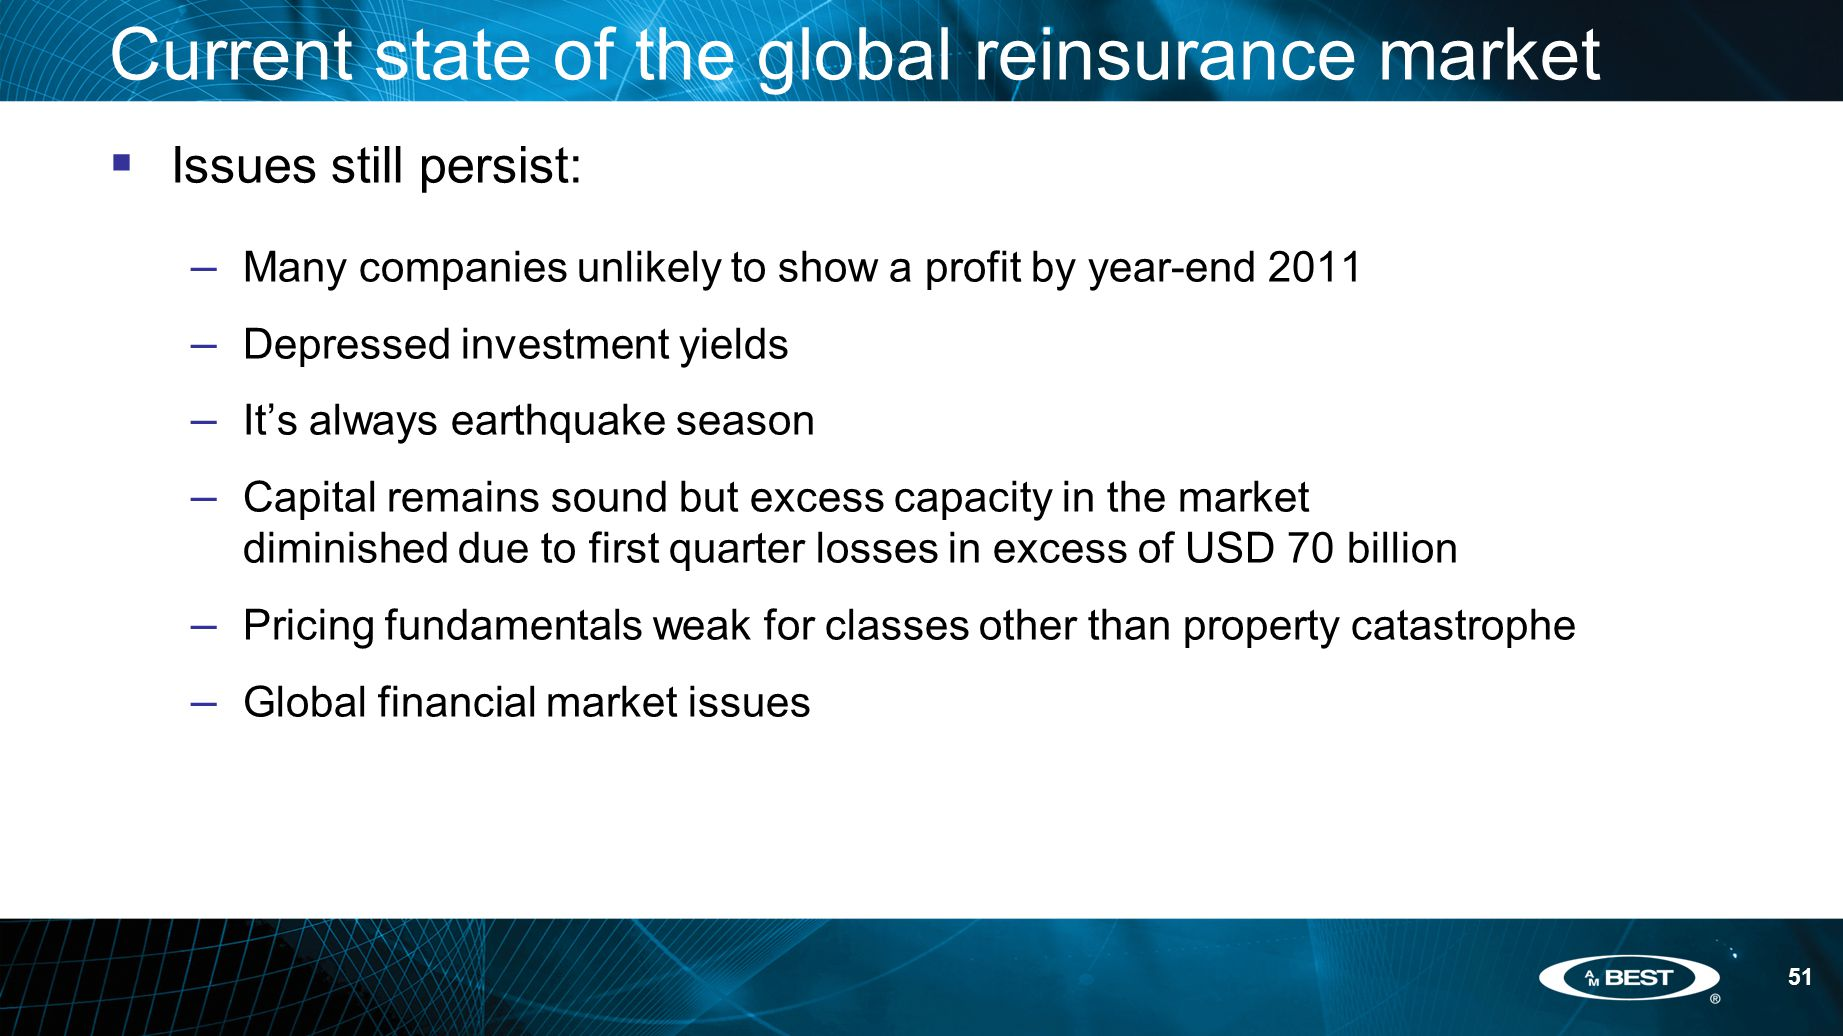 51 Current state of the global reinsurance market  Issues still persist: – Many companies unlikely to show a profit by year-end 2011 – Depressed investment yields – It's always earthquake season – Capital remains sound but excess capacity in the market diminished due to first quarter losses in excess of USD 70 billion – Pricing fundamentals weak for classes other than property catastrophe – Global financial market issues